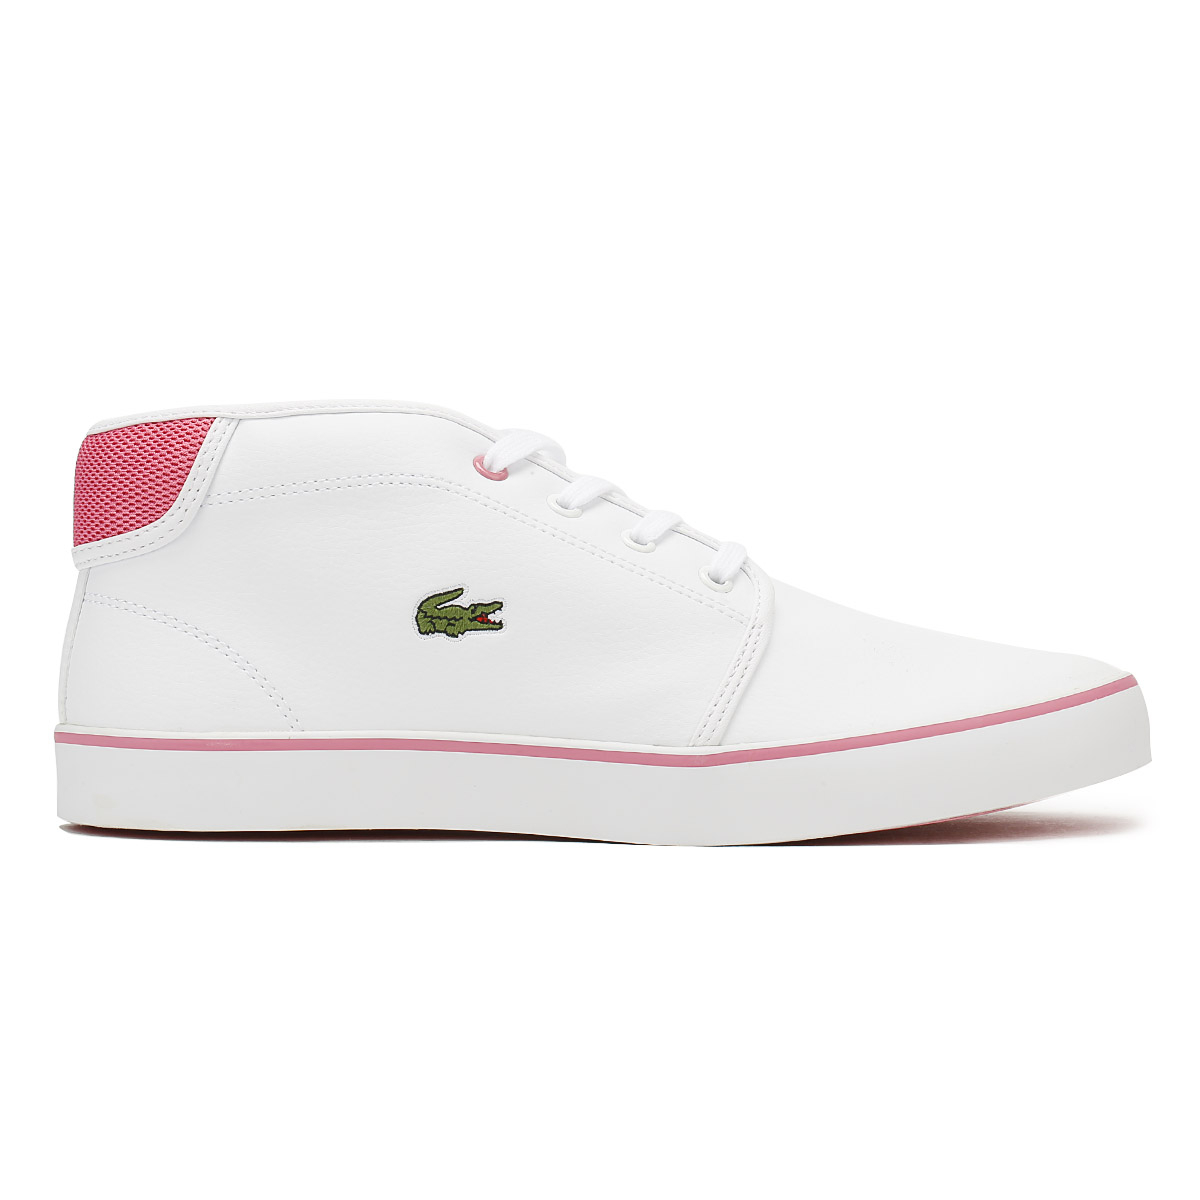 36754128dfabd6 Lacoste Junior Trainers White  Pink AMPTHILL 118 1 Kids Leather Casual Shoes